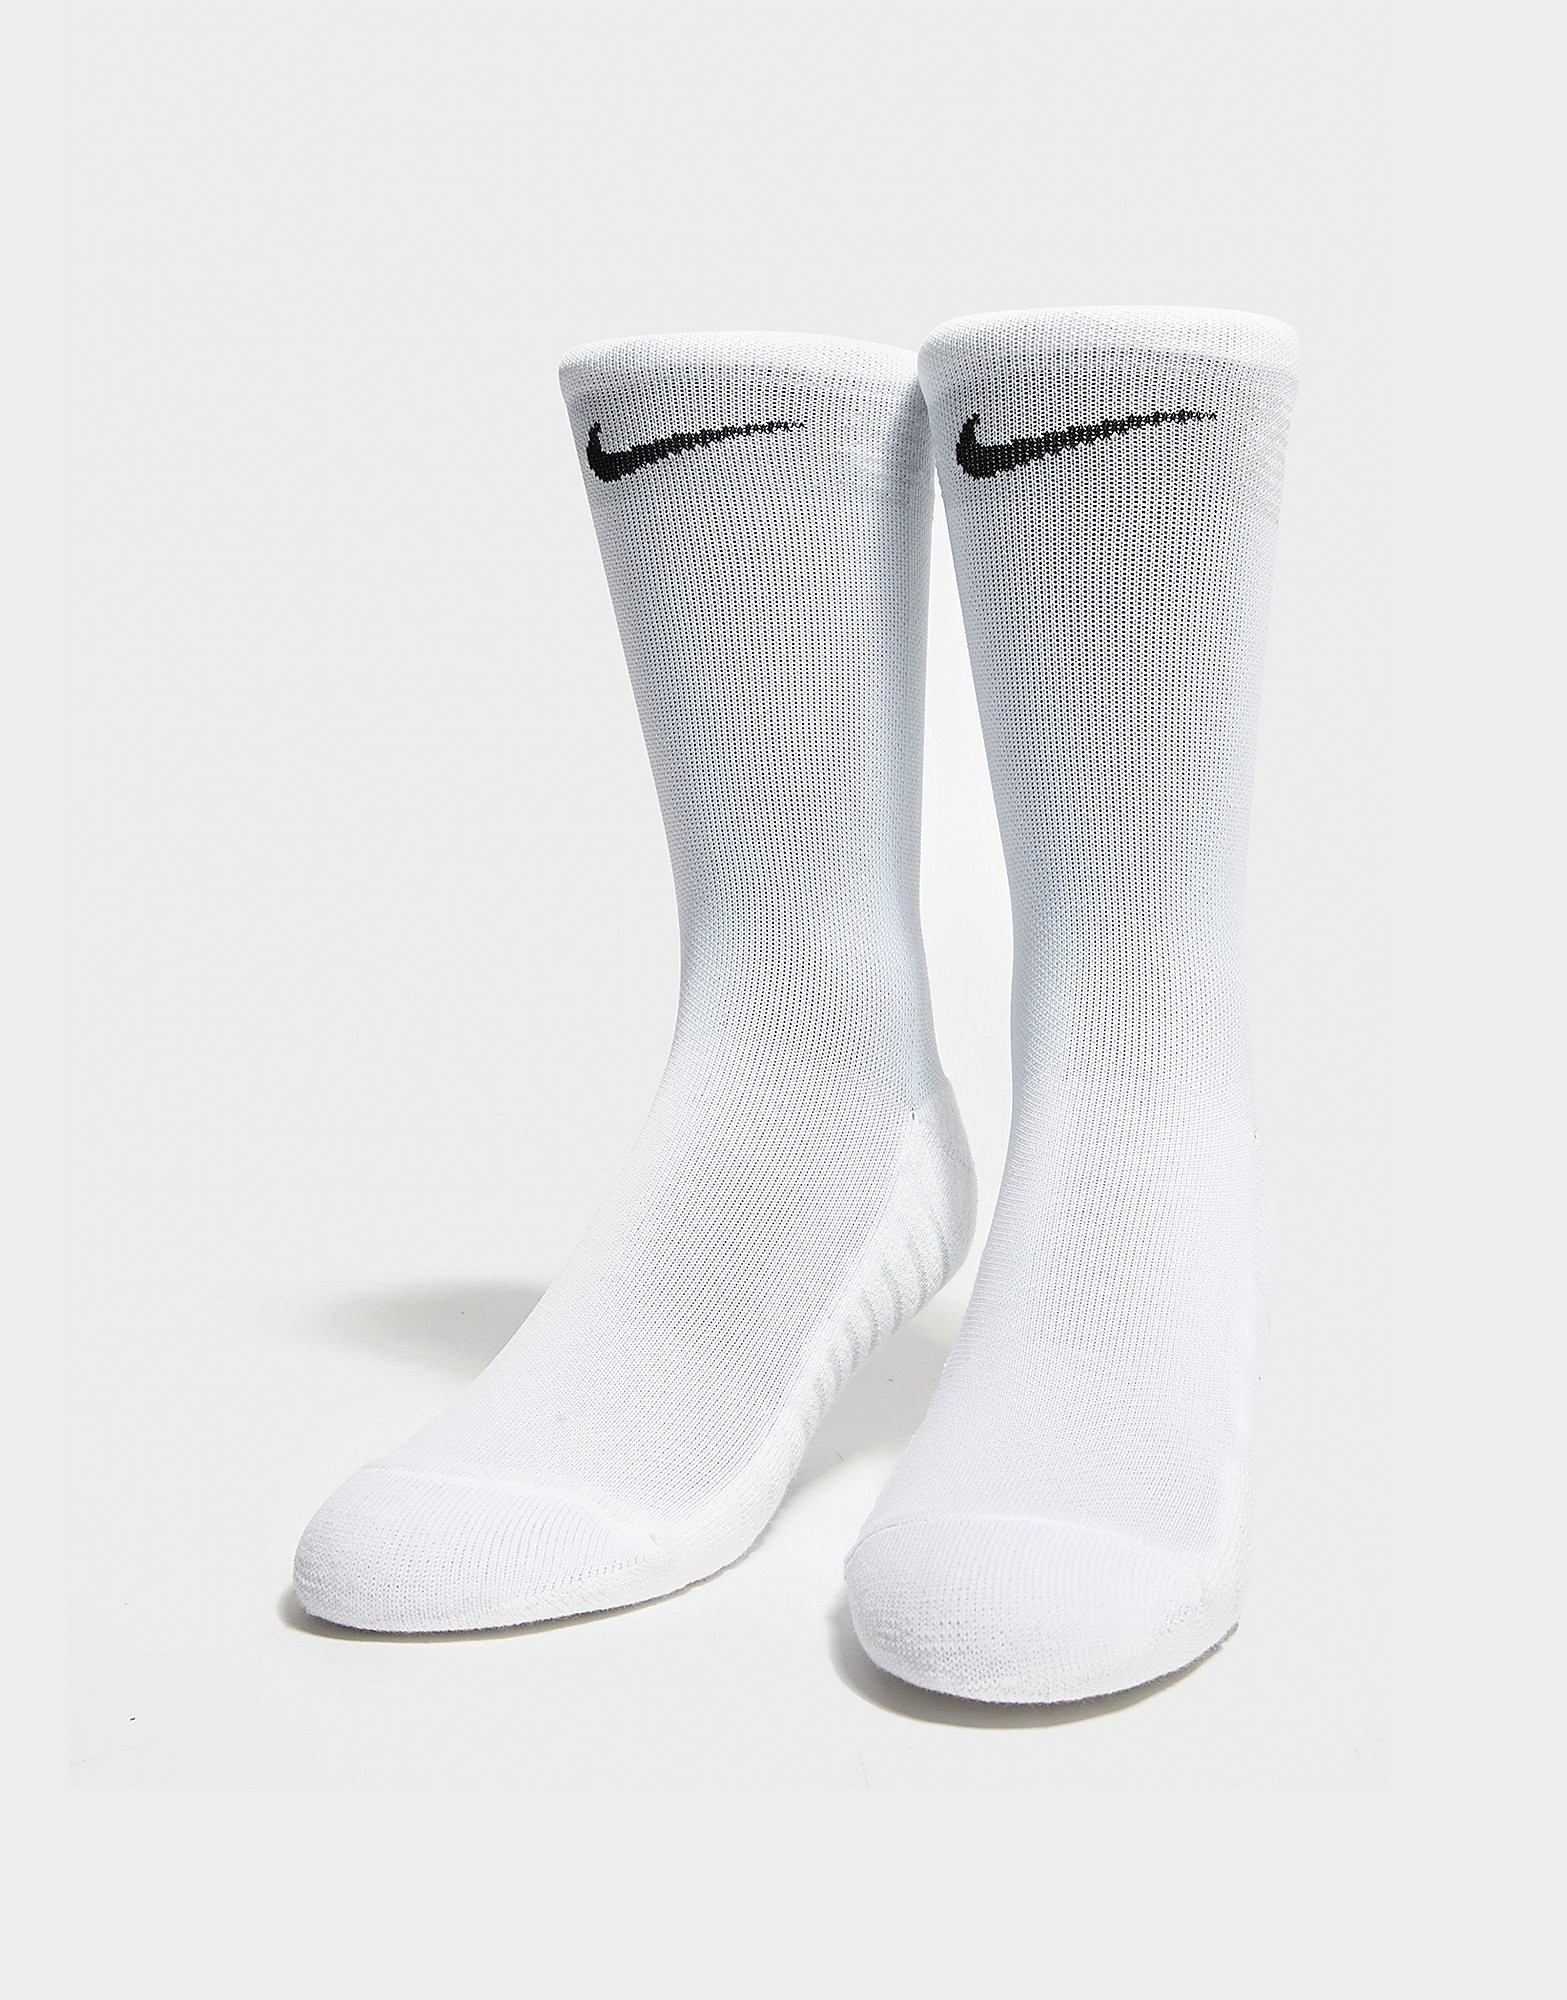 Nike MatchFit Crew Football Socks